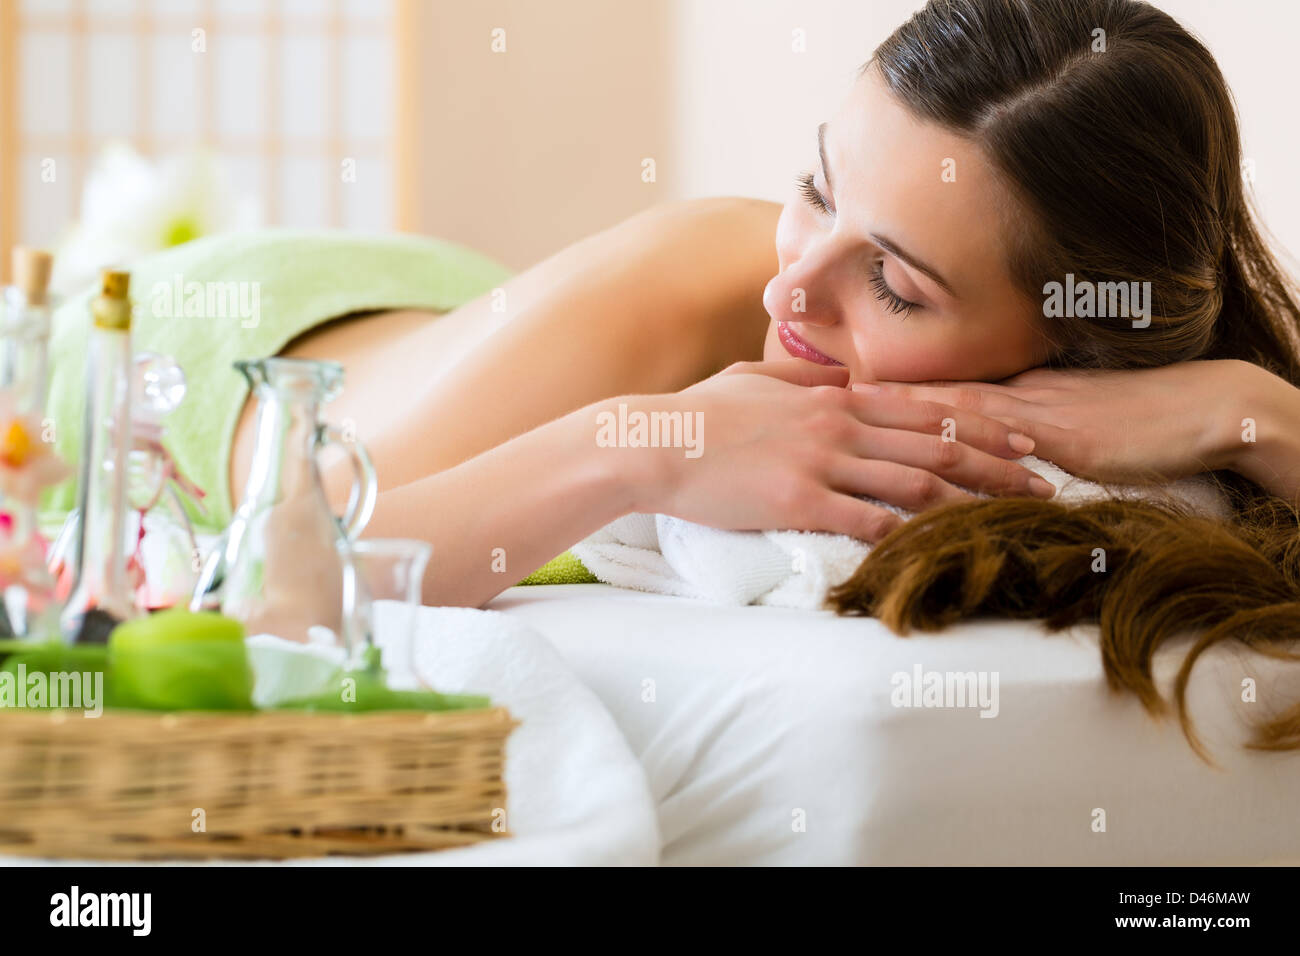 Beautiful Woman in relaxing in a spa situation, small bottles with essential oils standing beside her - Stock Image